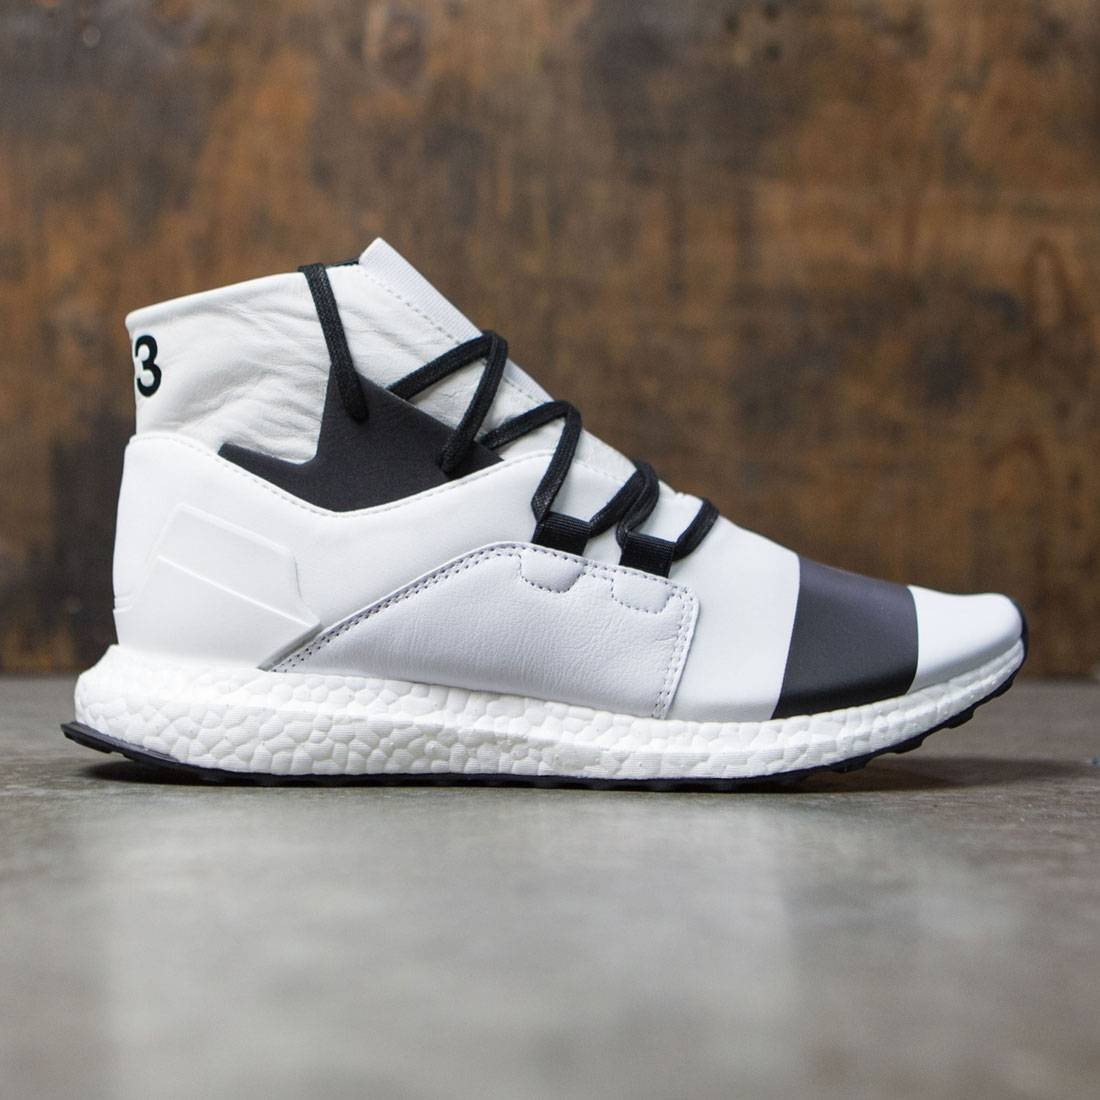 0feaa3dfe1b0 adidas y kozoko high white black